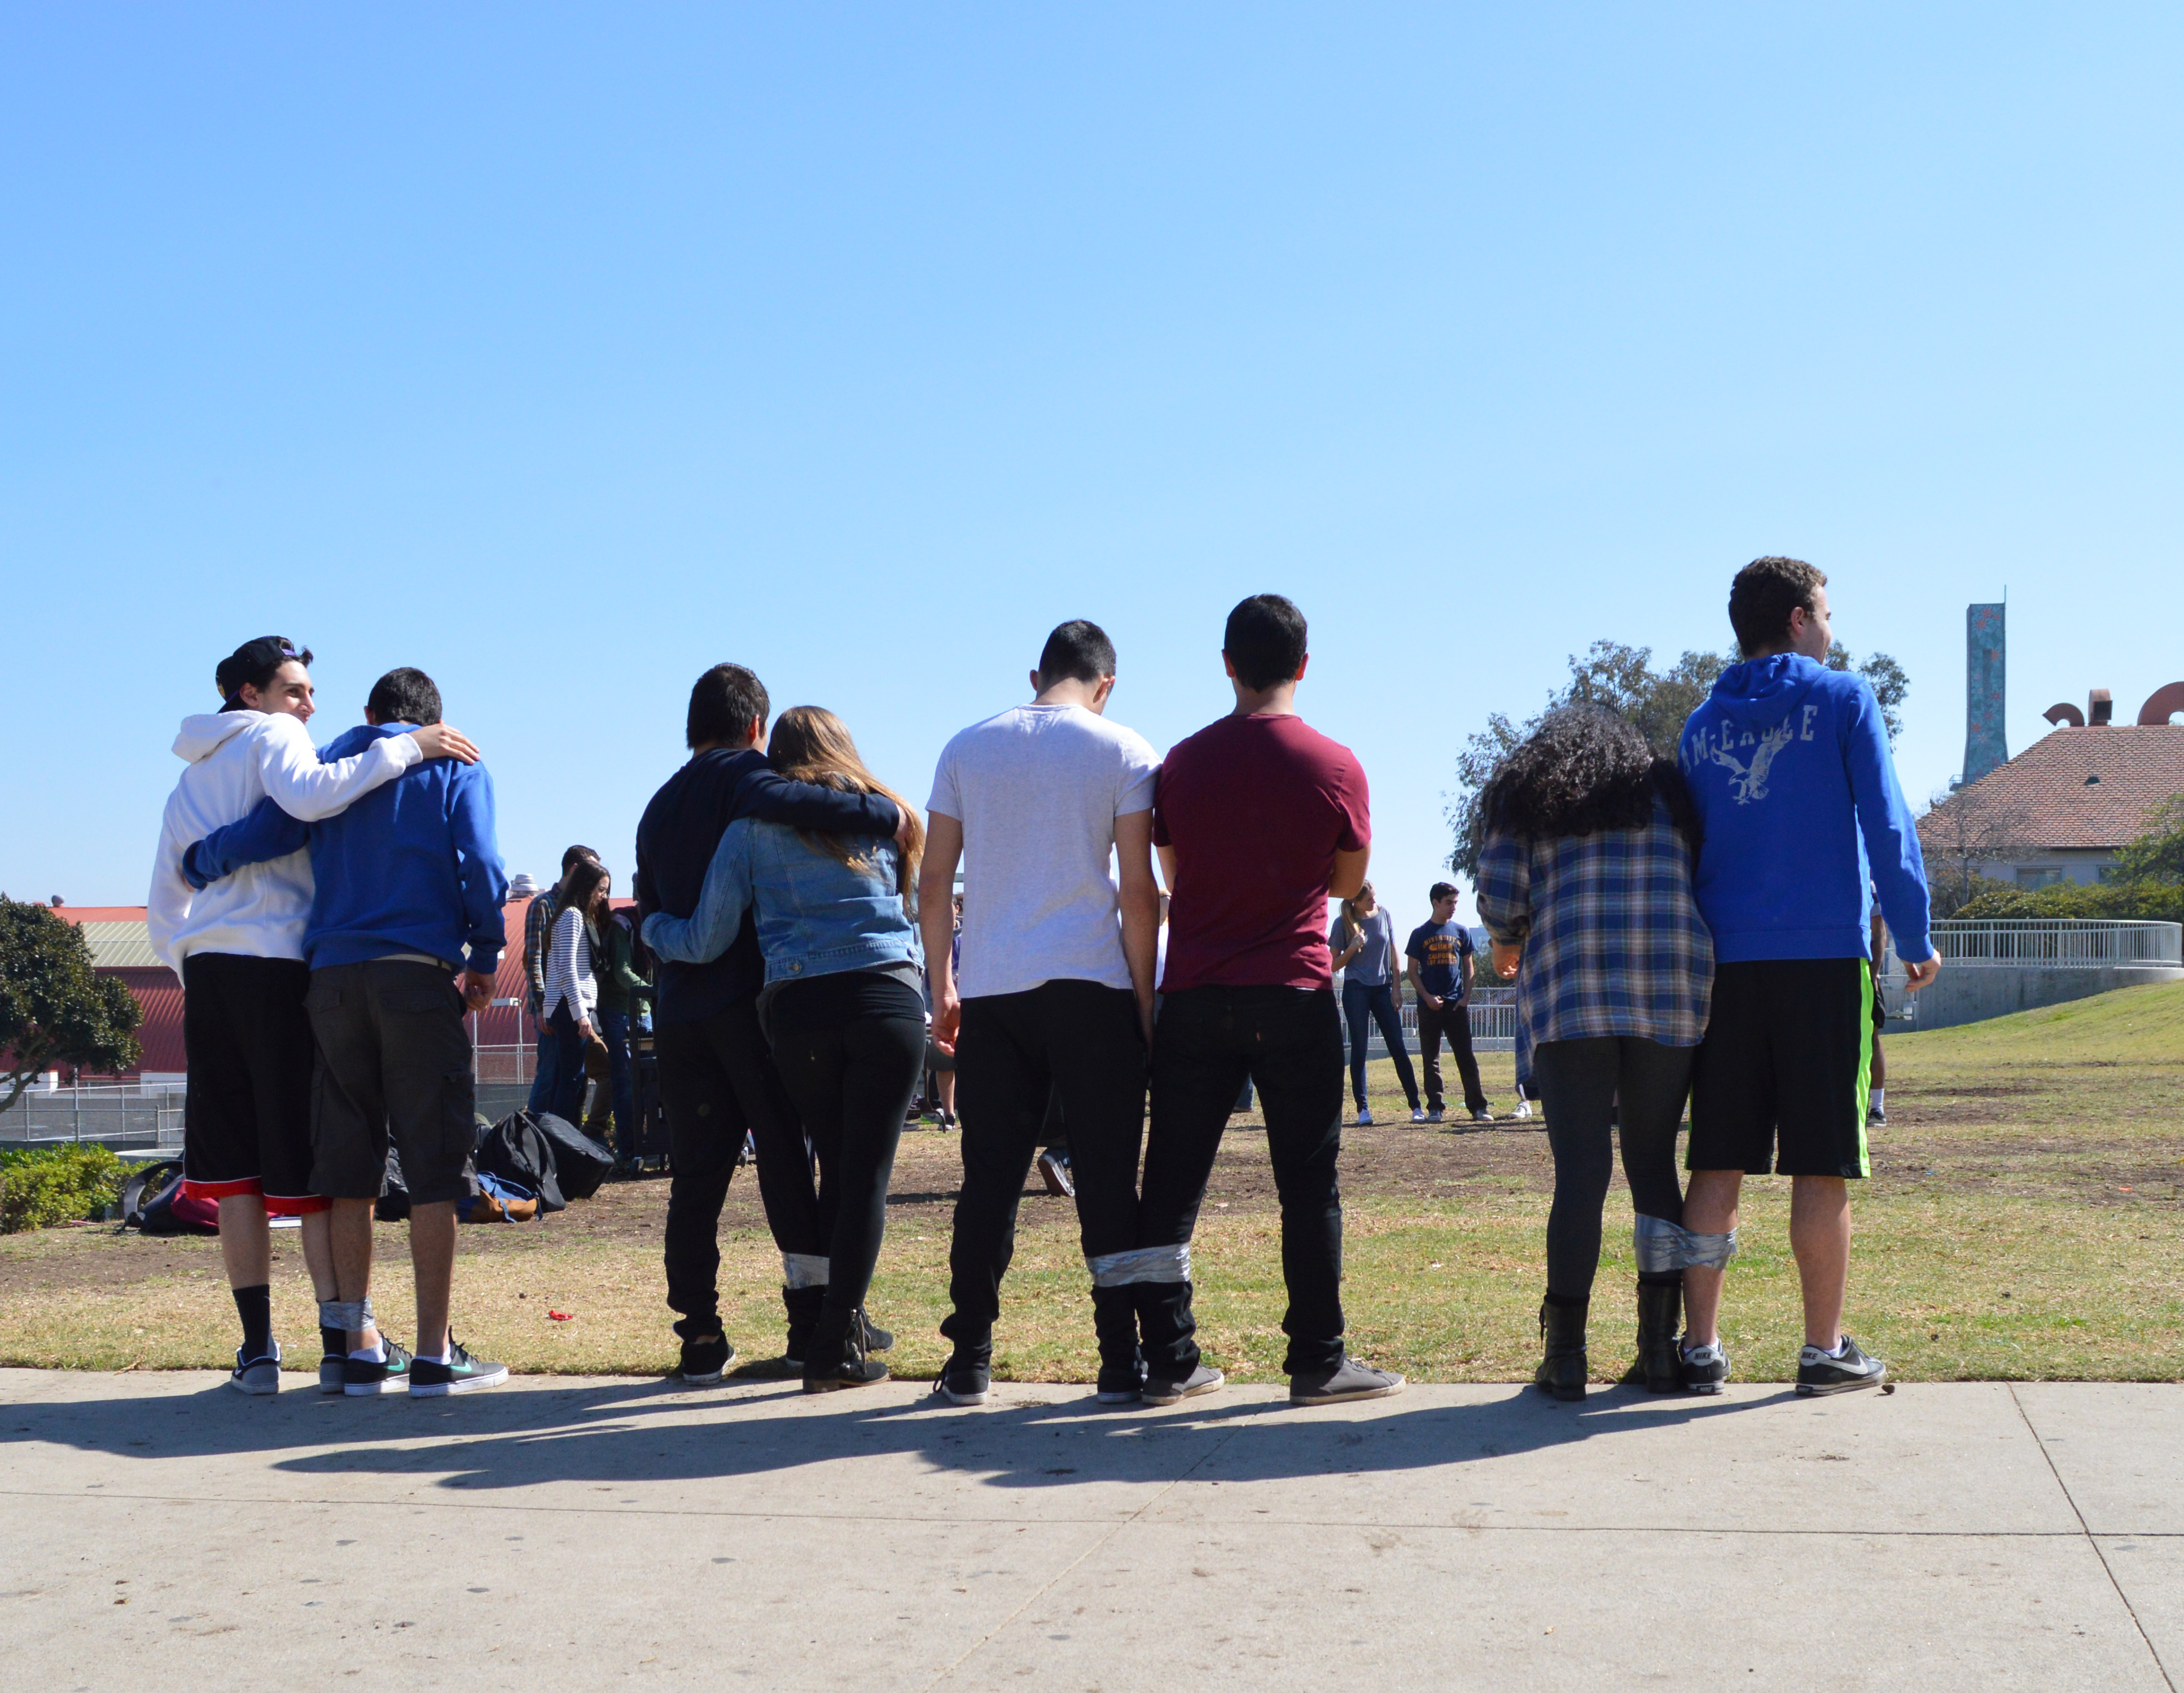 Pairs of juniors and seniors line up to take part in the final activity of the lunch period: the three-legged race.